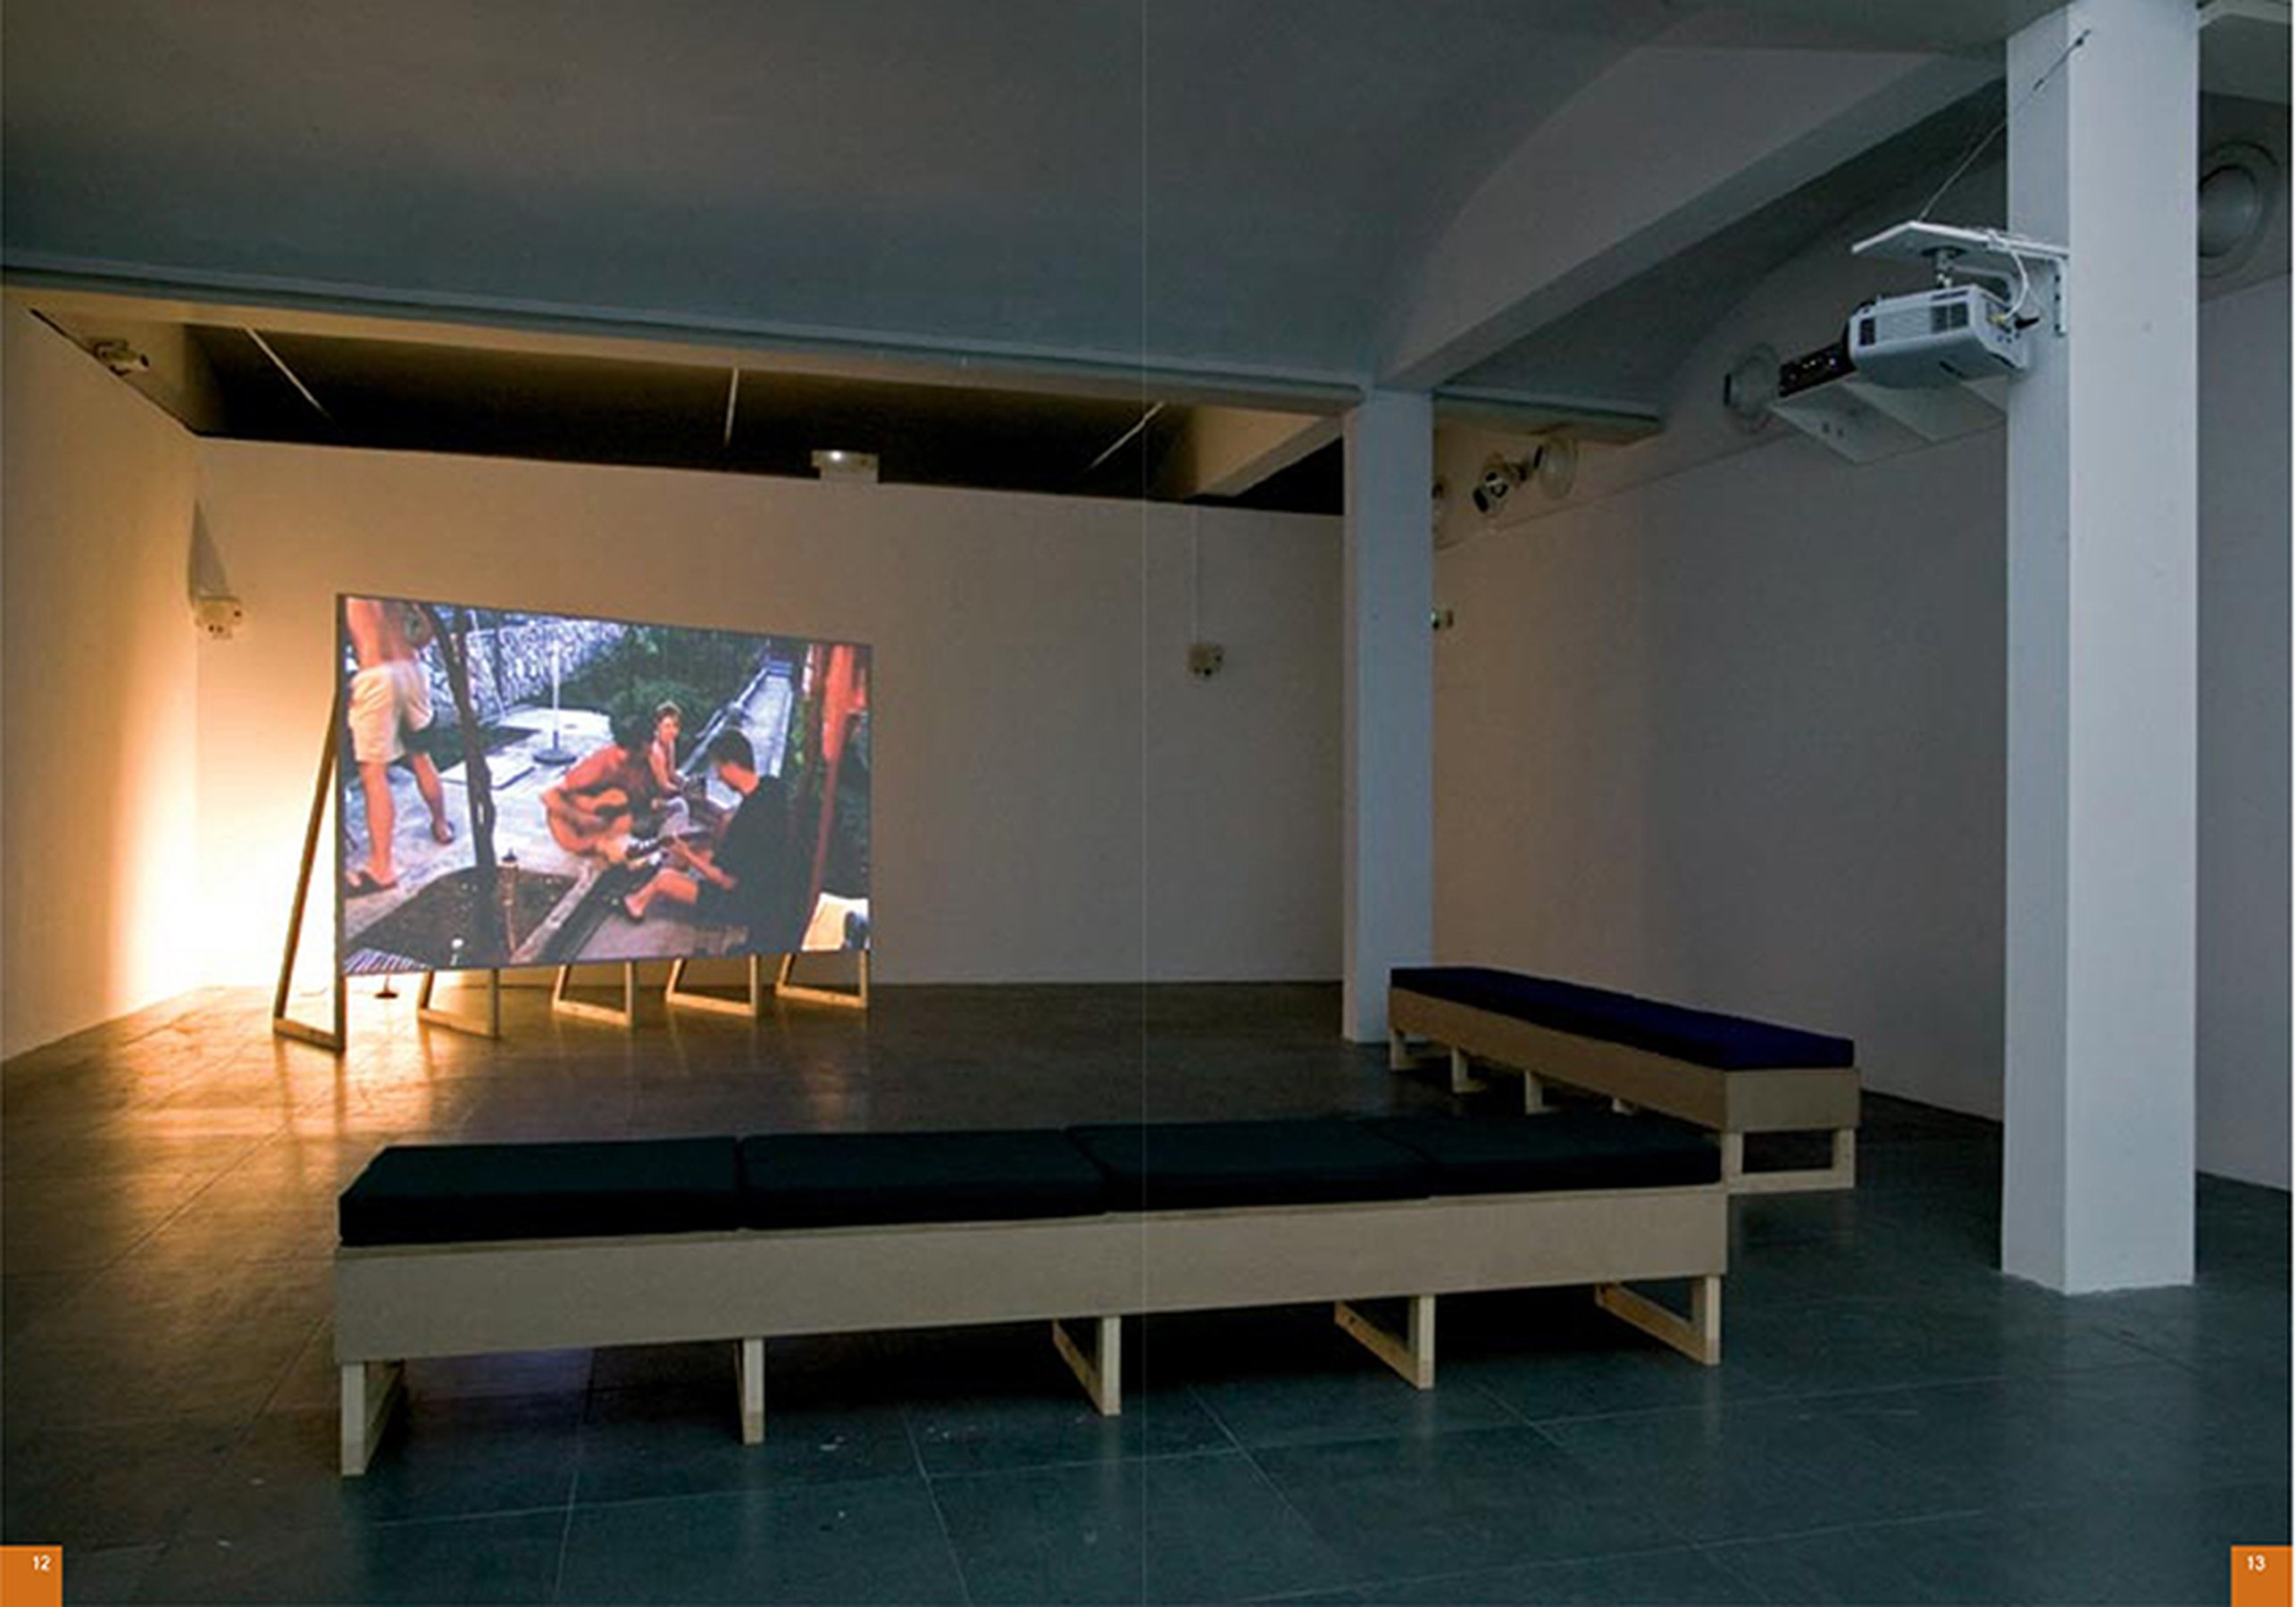 Another Album, 2006, HD, 28'12'', loop, installation view, Caixa Forum, Barcelona, 2007